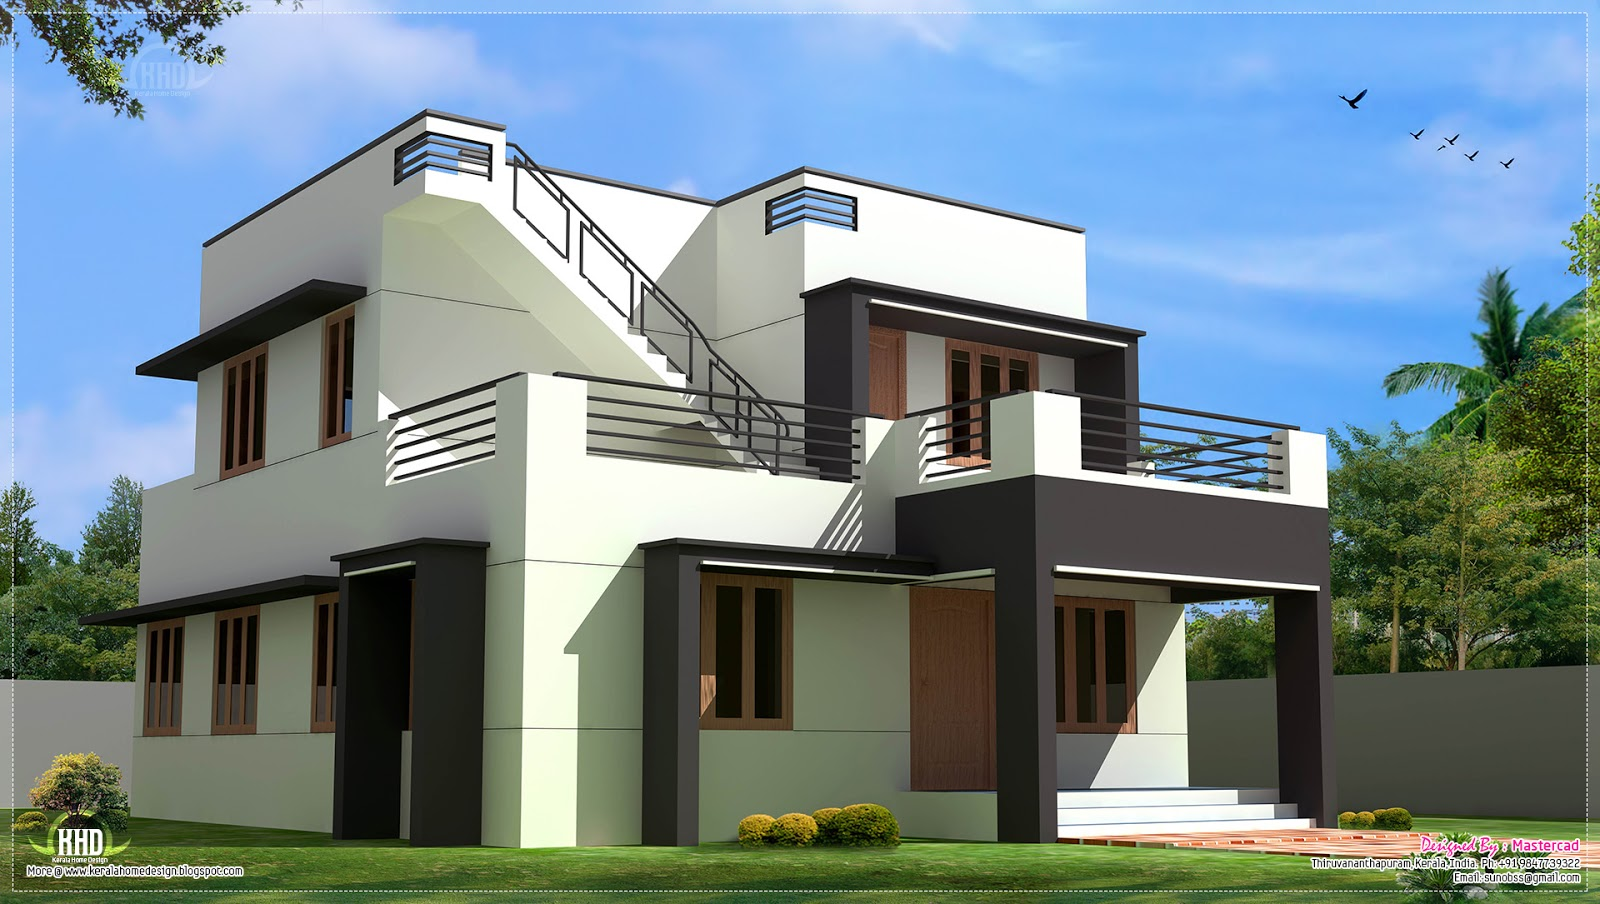 Modern house design in 1700 kerala home design for Modern mansion designs